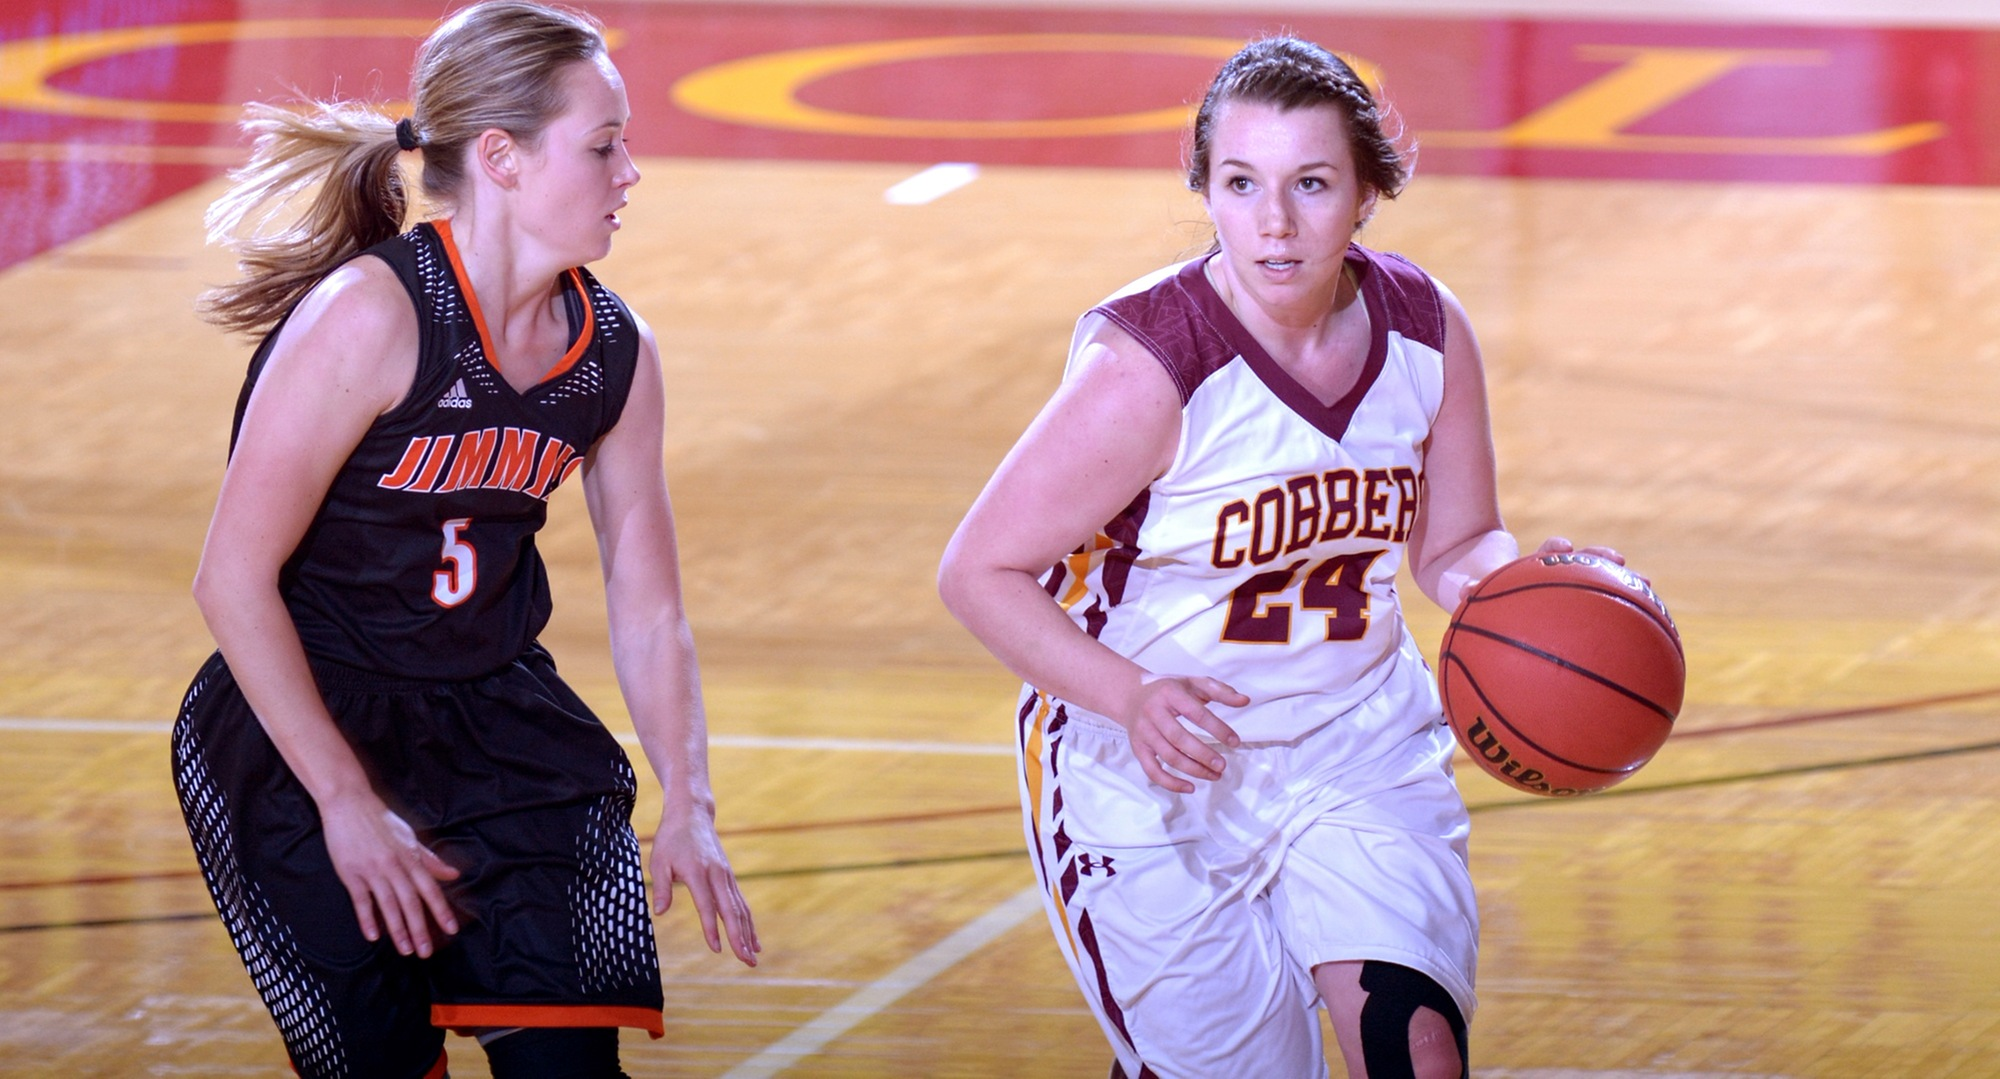 Junior Cassidy Rahman had a career-high 14 points and went 4-for-7 from 3-point range to help the Cobbers beat Hamline 73-65.